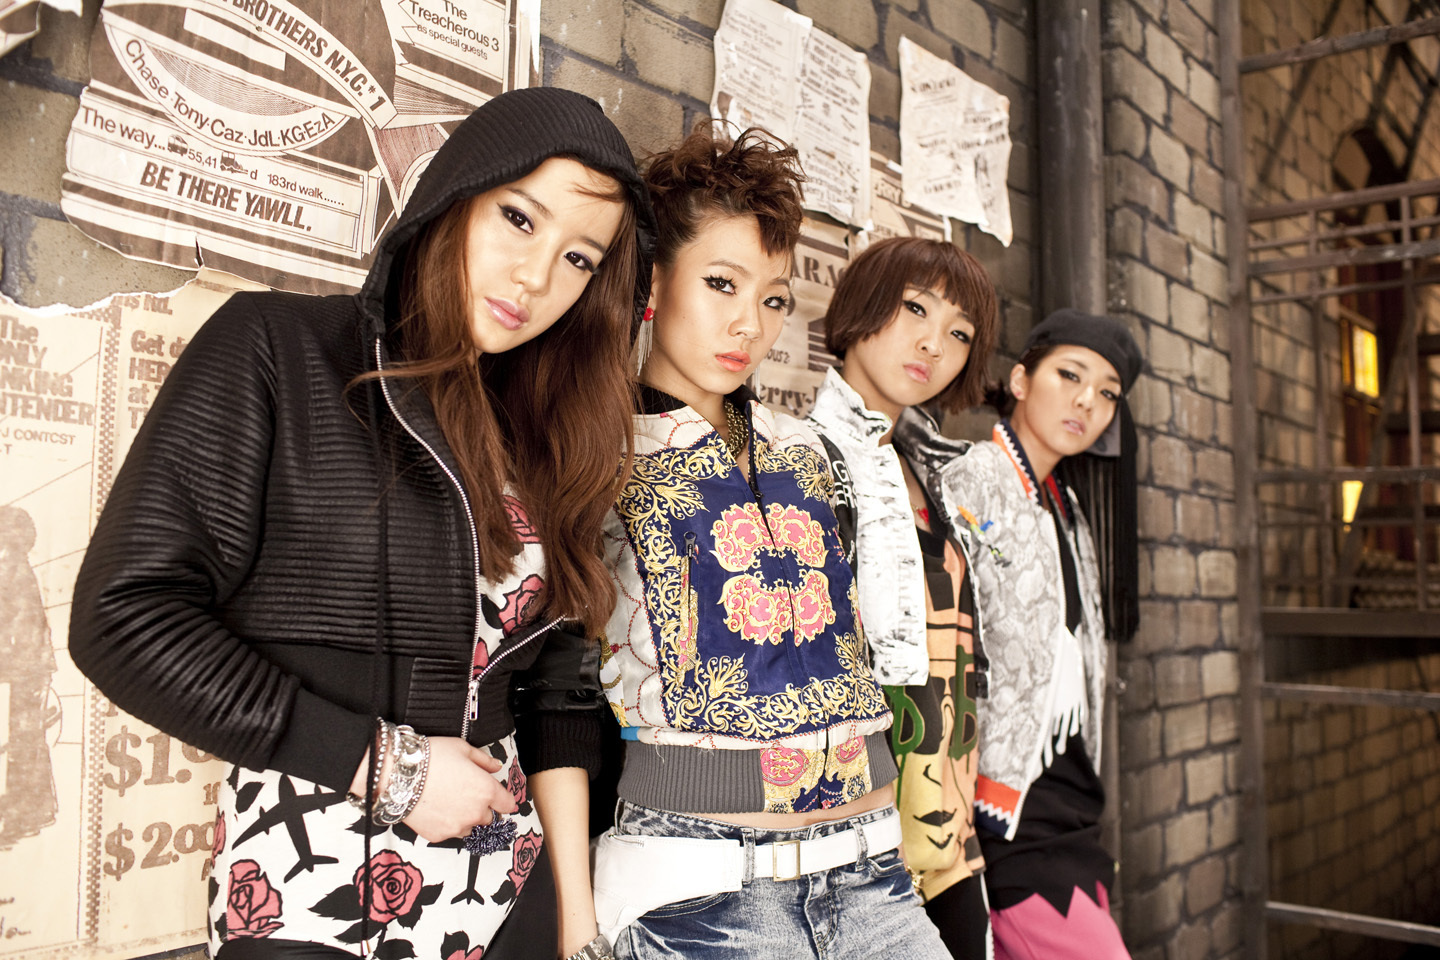 http://images4.fanpop.com/image/photos/21100000/2NE1-2ne1-21108804-1440-960.jpg